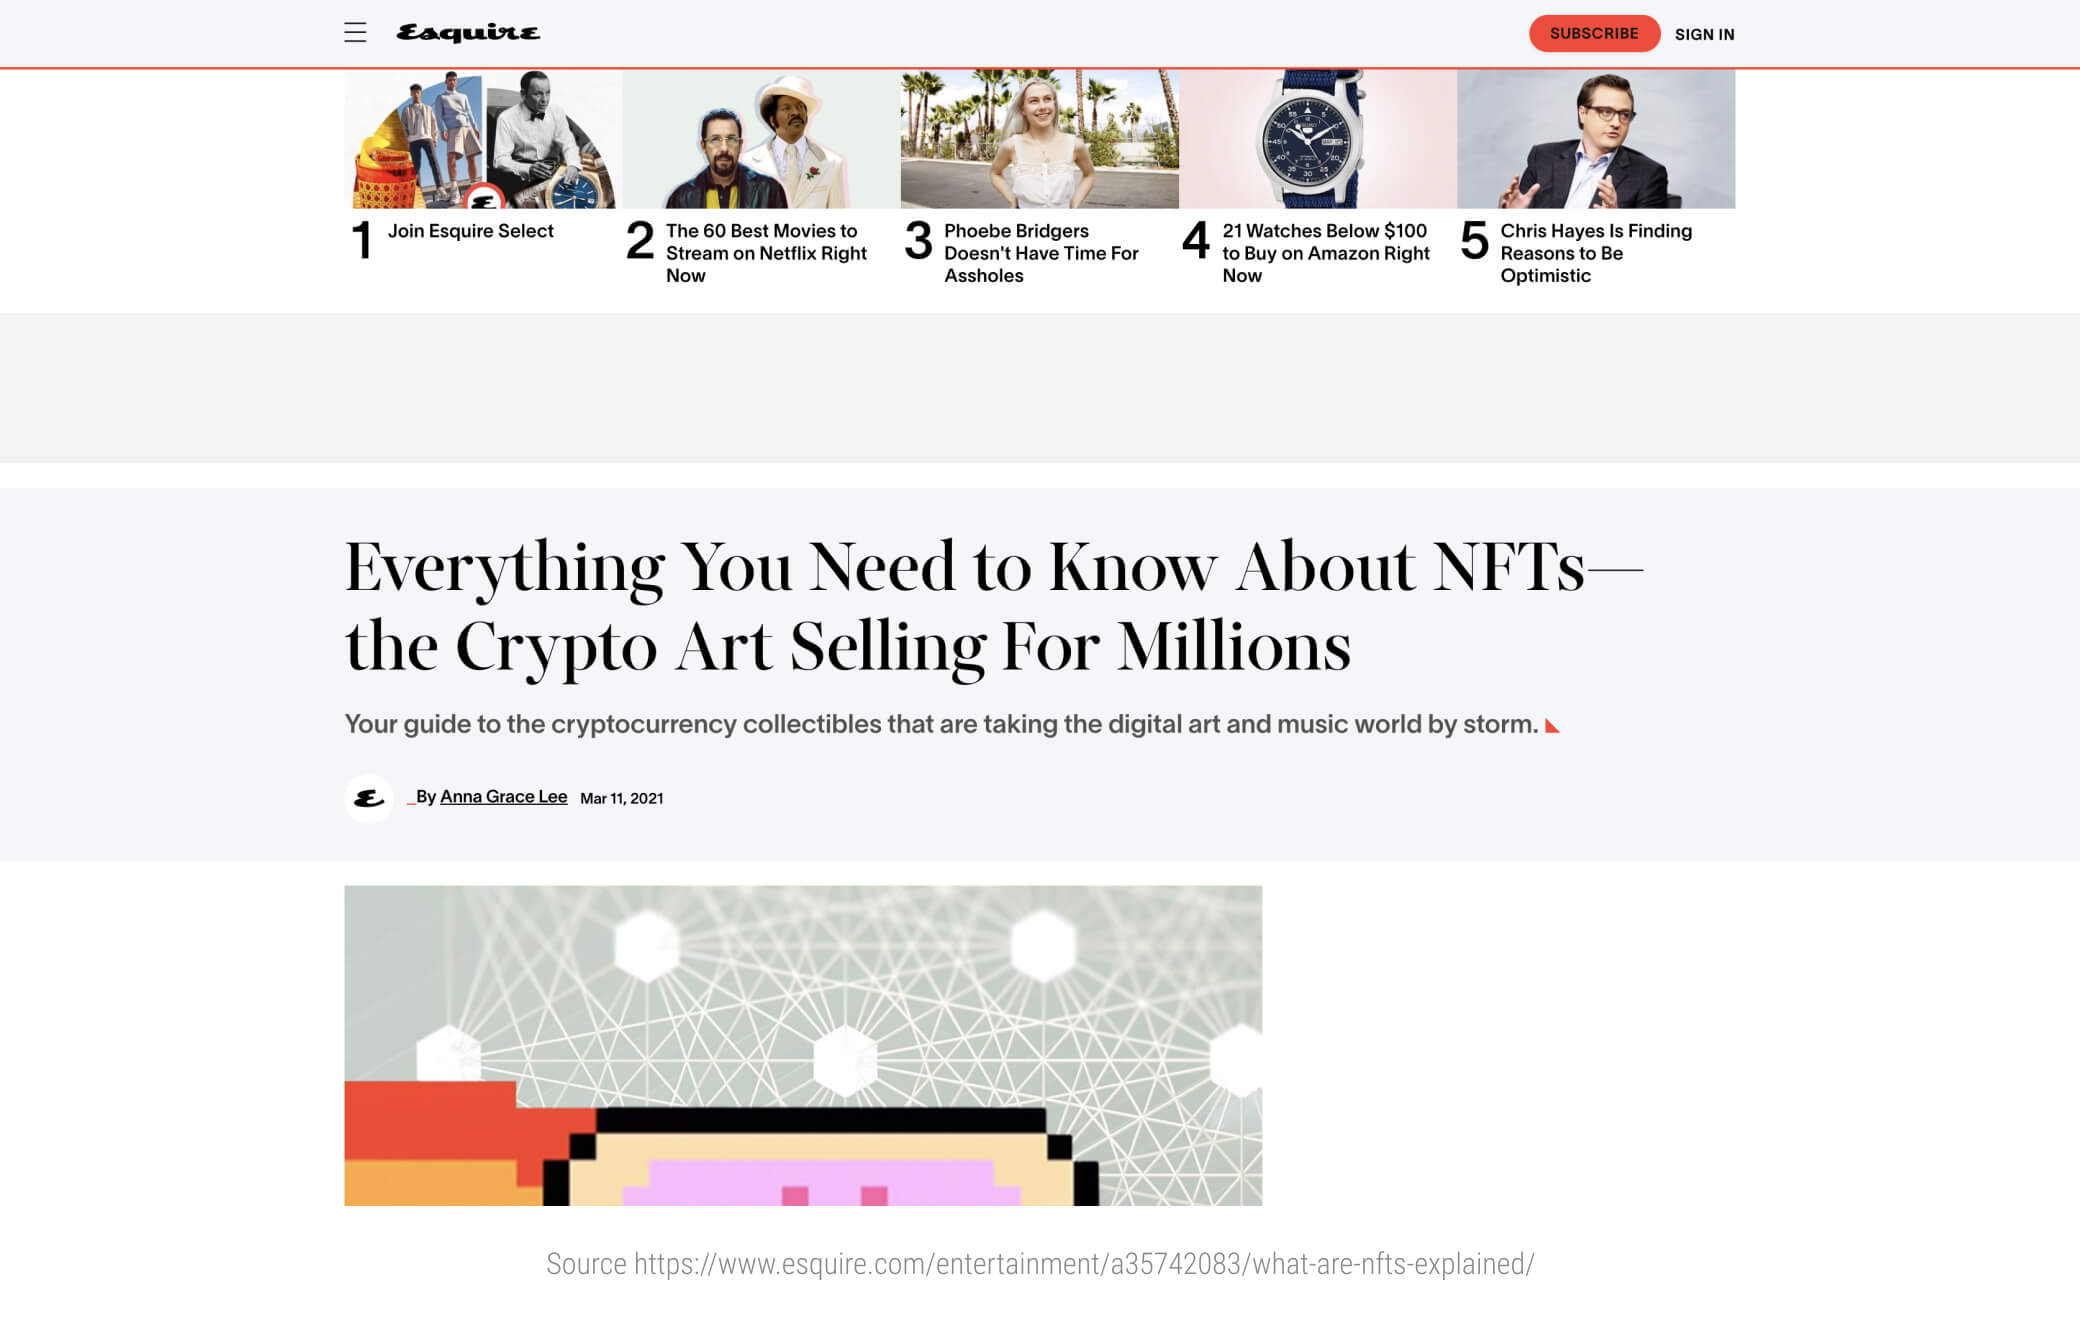 Everything-You-Need-to-Know-About-NFTs-the-Crypto-Art-Selling-For-Millions